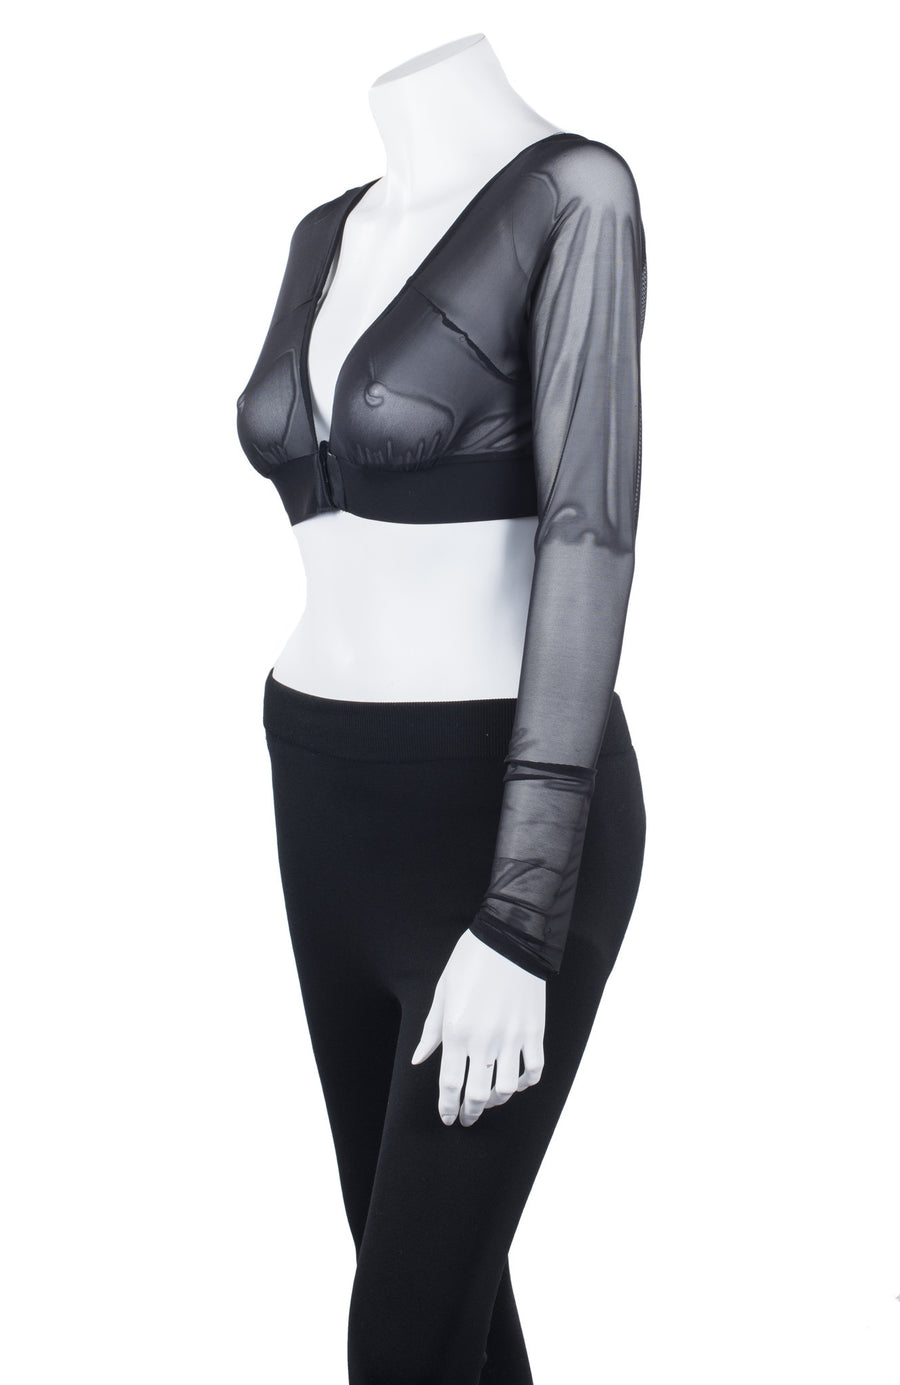 Completely Sheer Long Sleeve with Adjustable Corset